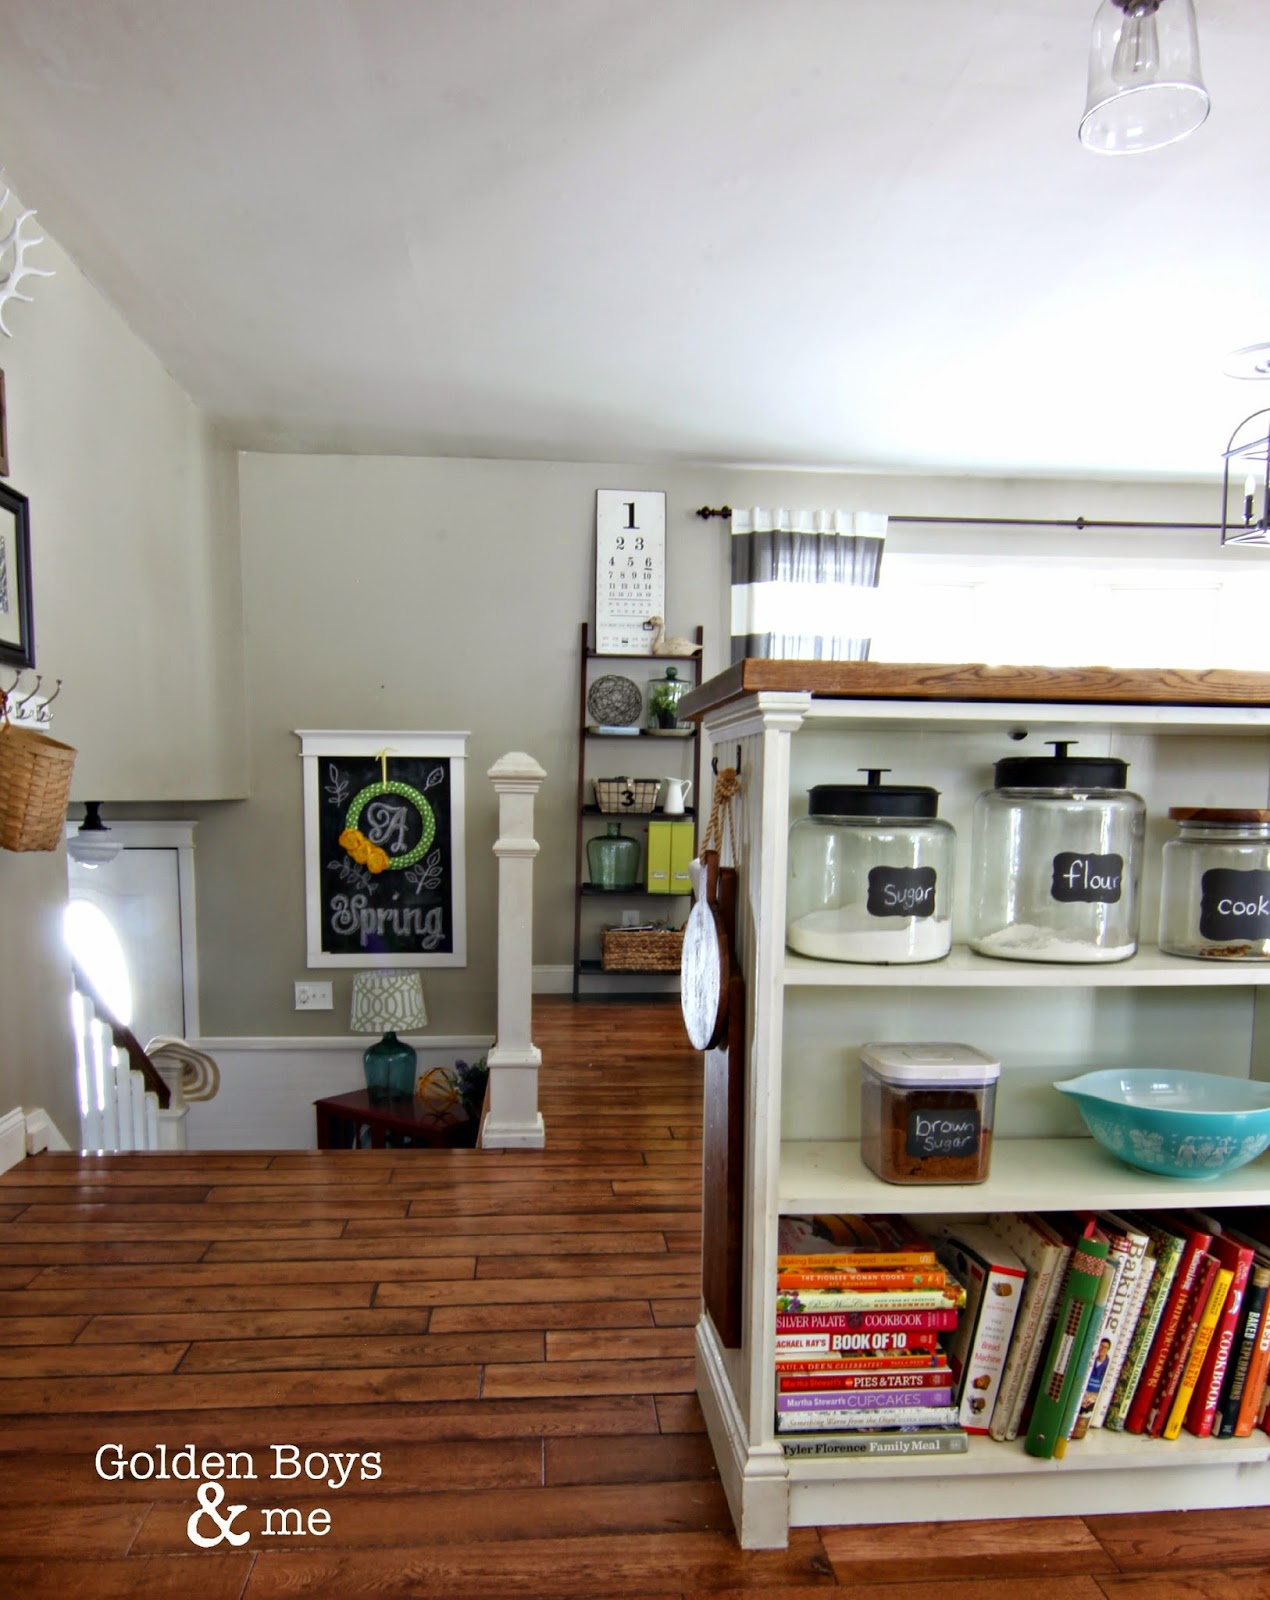 Split level home with open concept floor plan-www.goldenboysandme.com